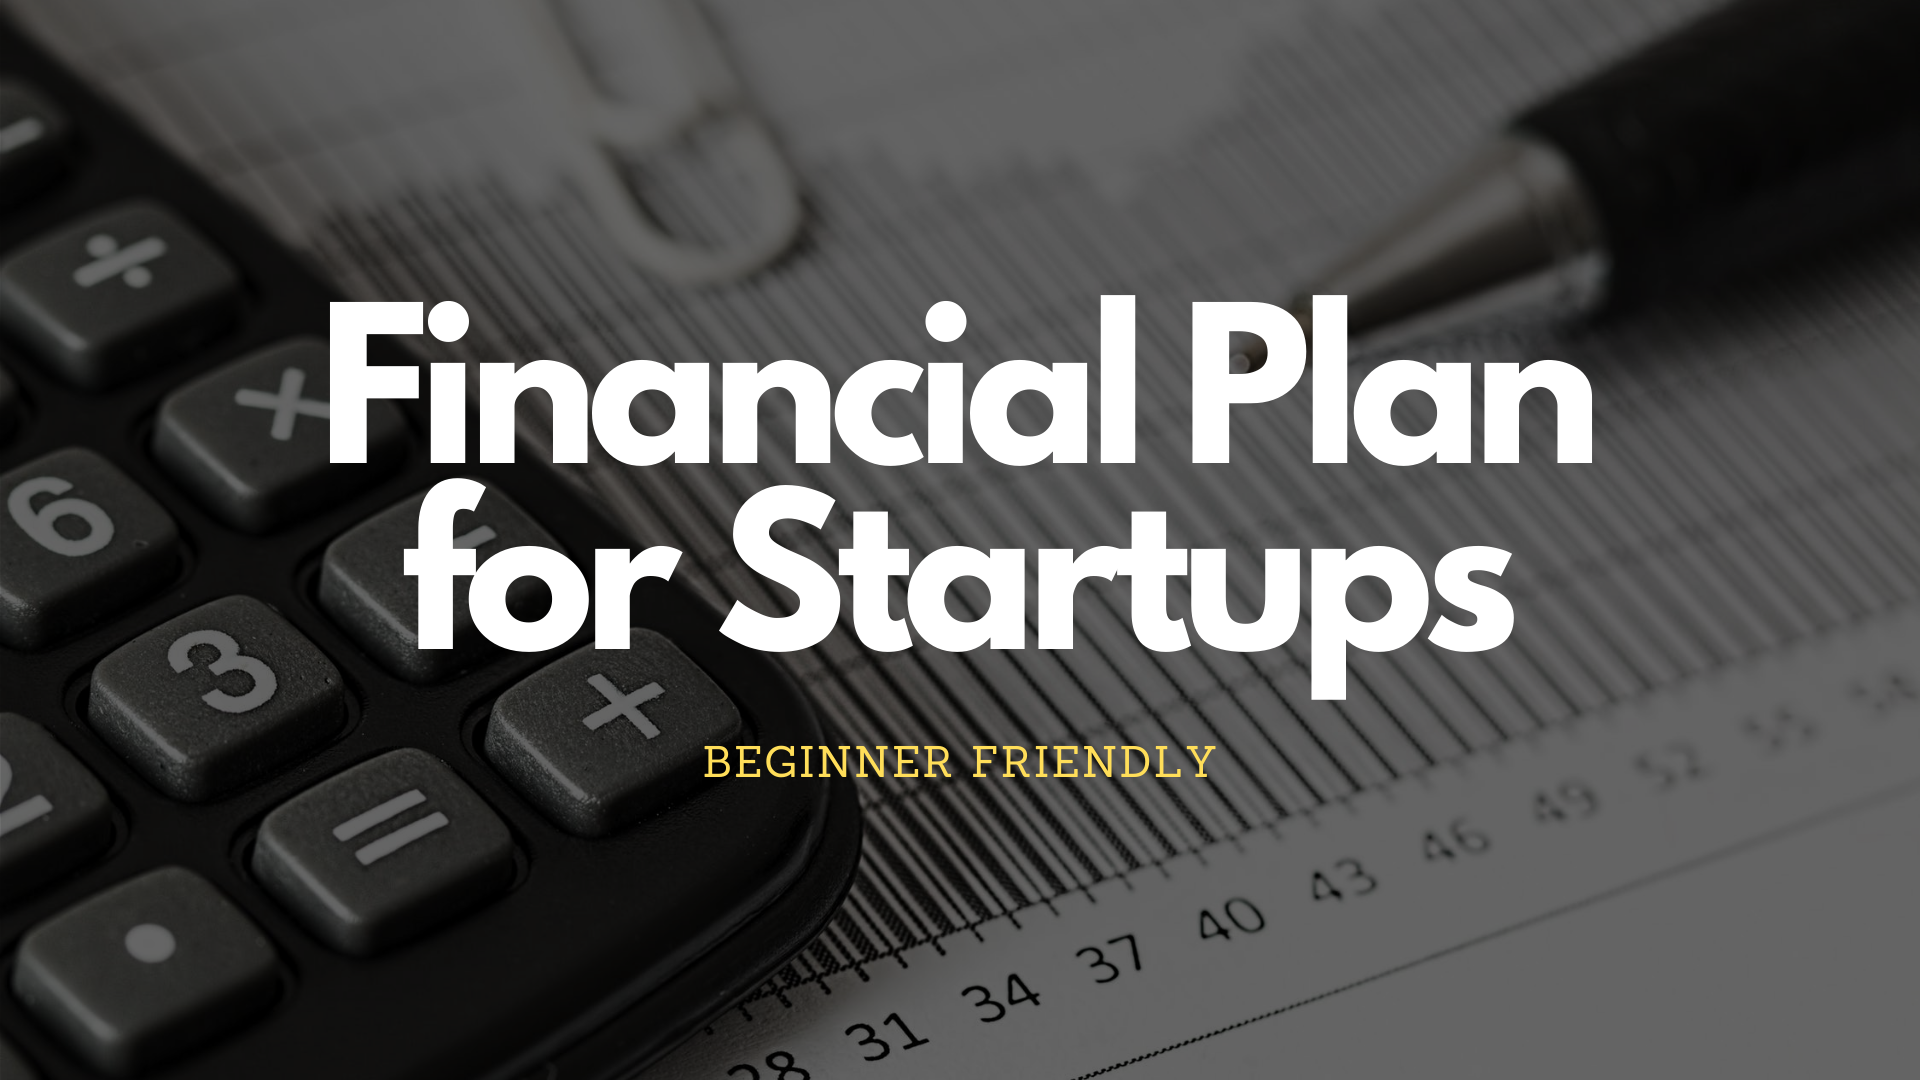 Beginner-Friendly Financial Plan for Startups in 6 Simple Steps